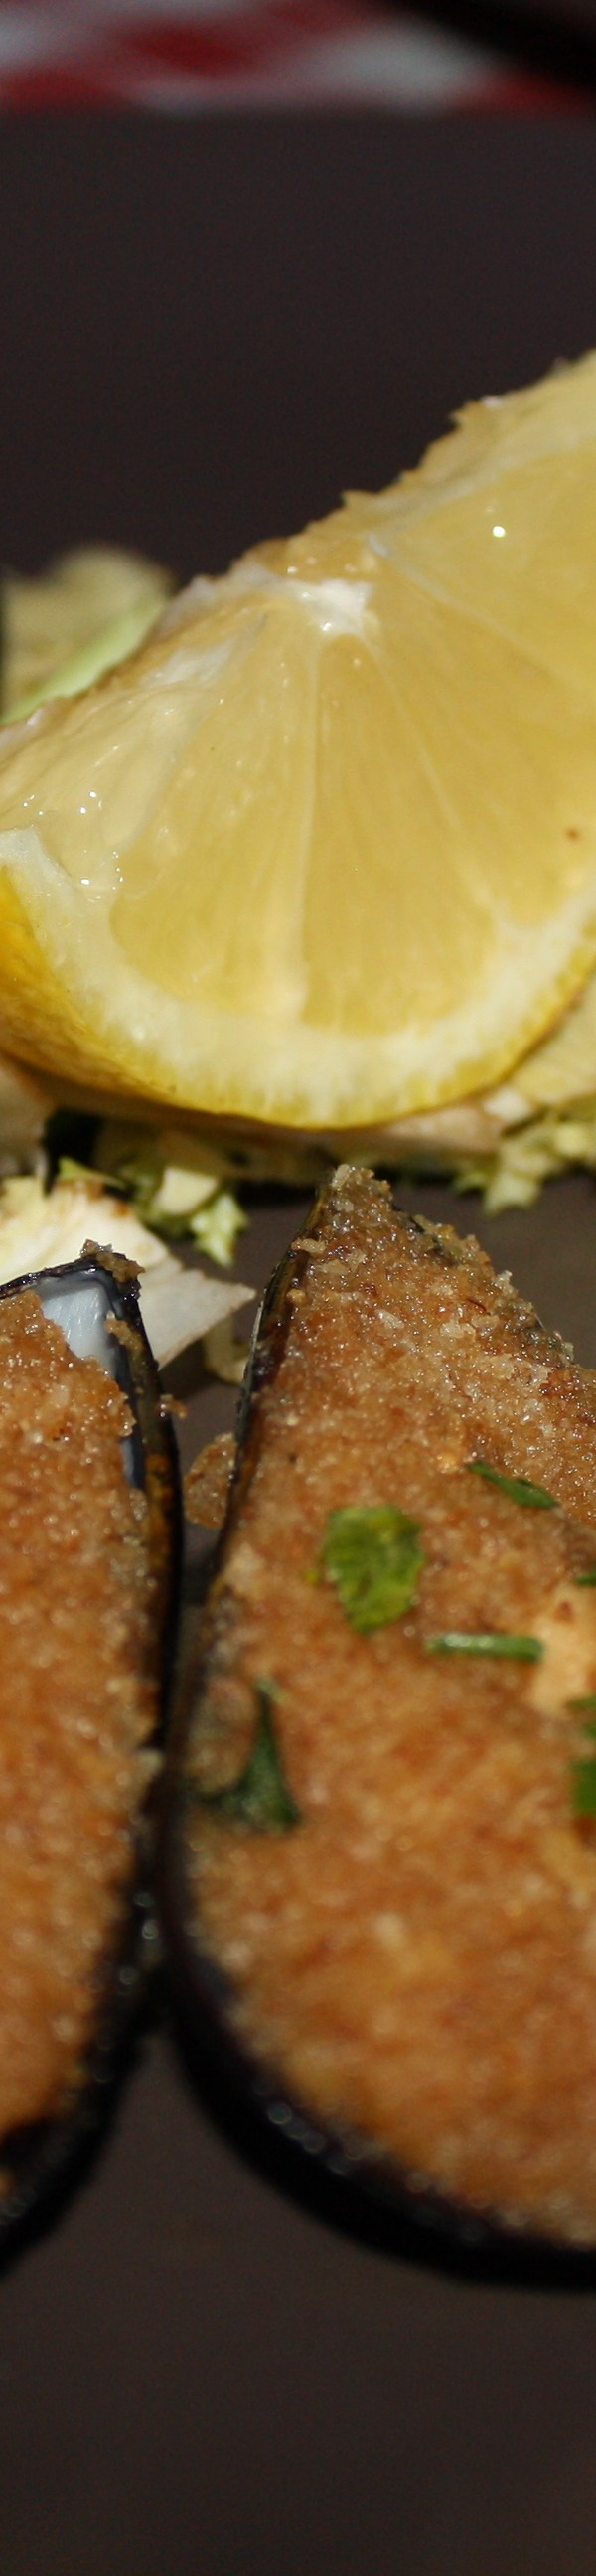 baked crumbed mussels naples